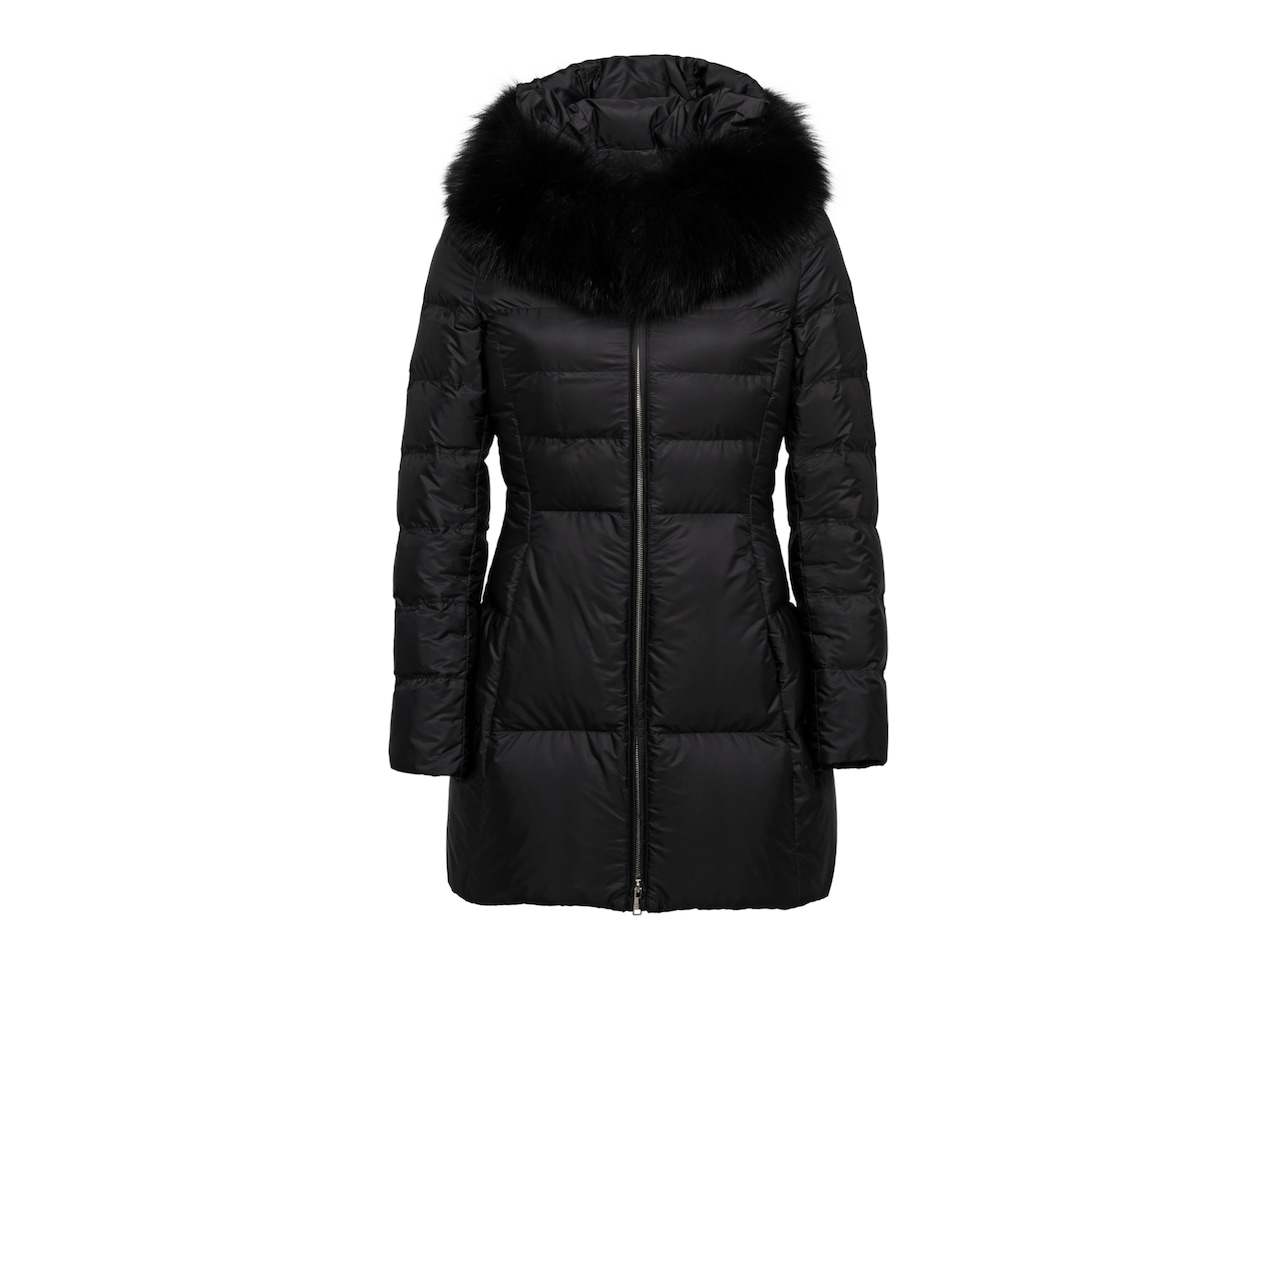 Prada Fur-Trimmed Nylon Down Jacket 1